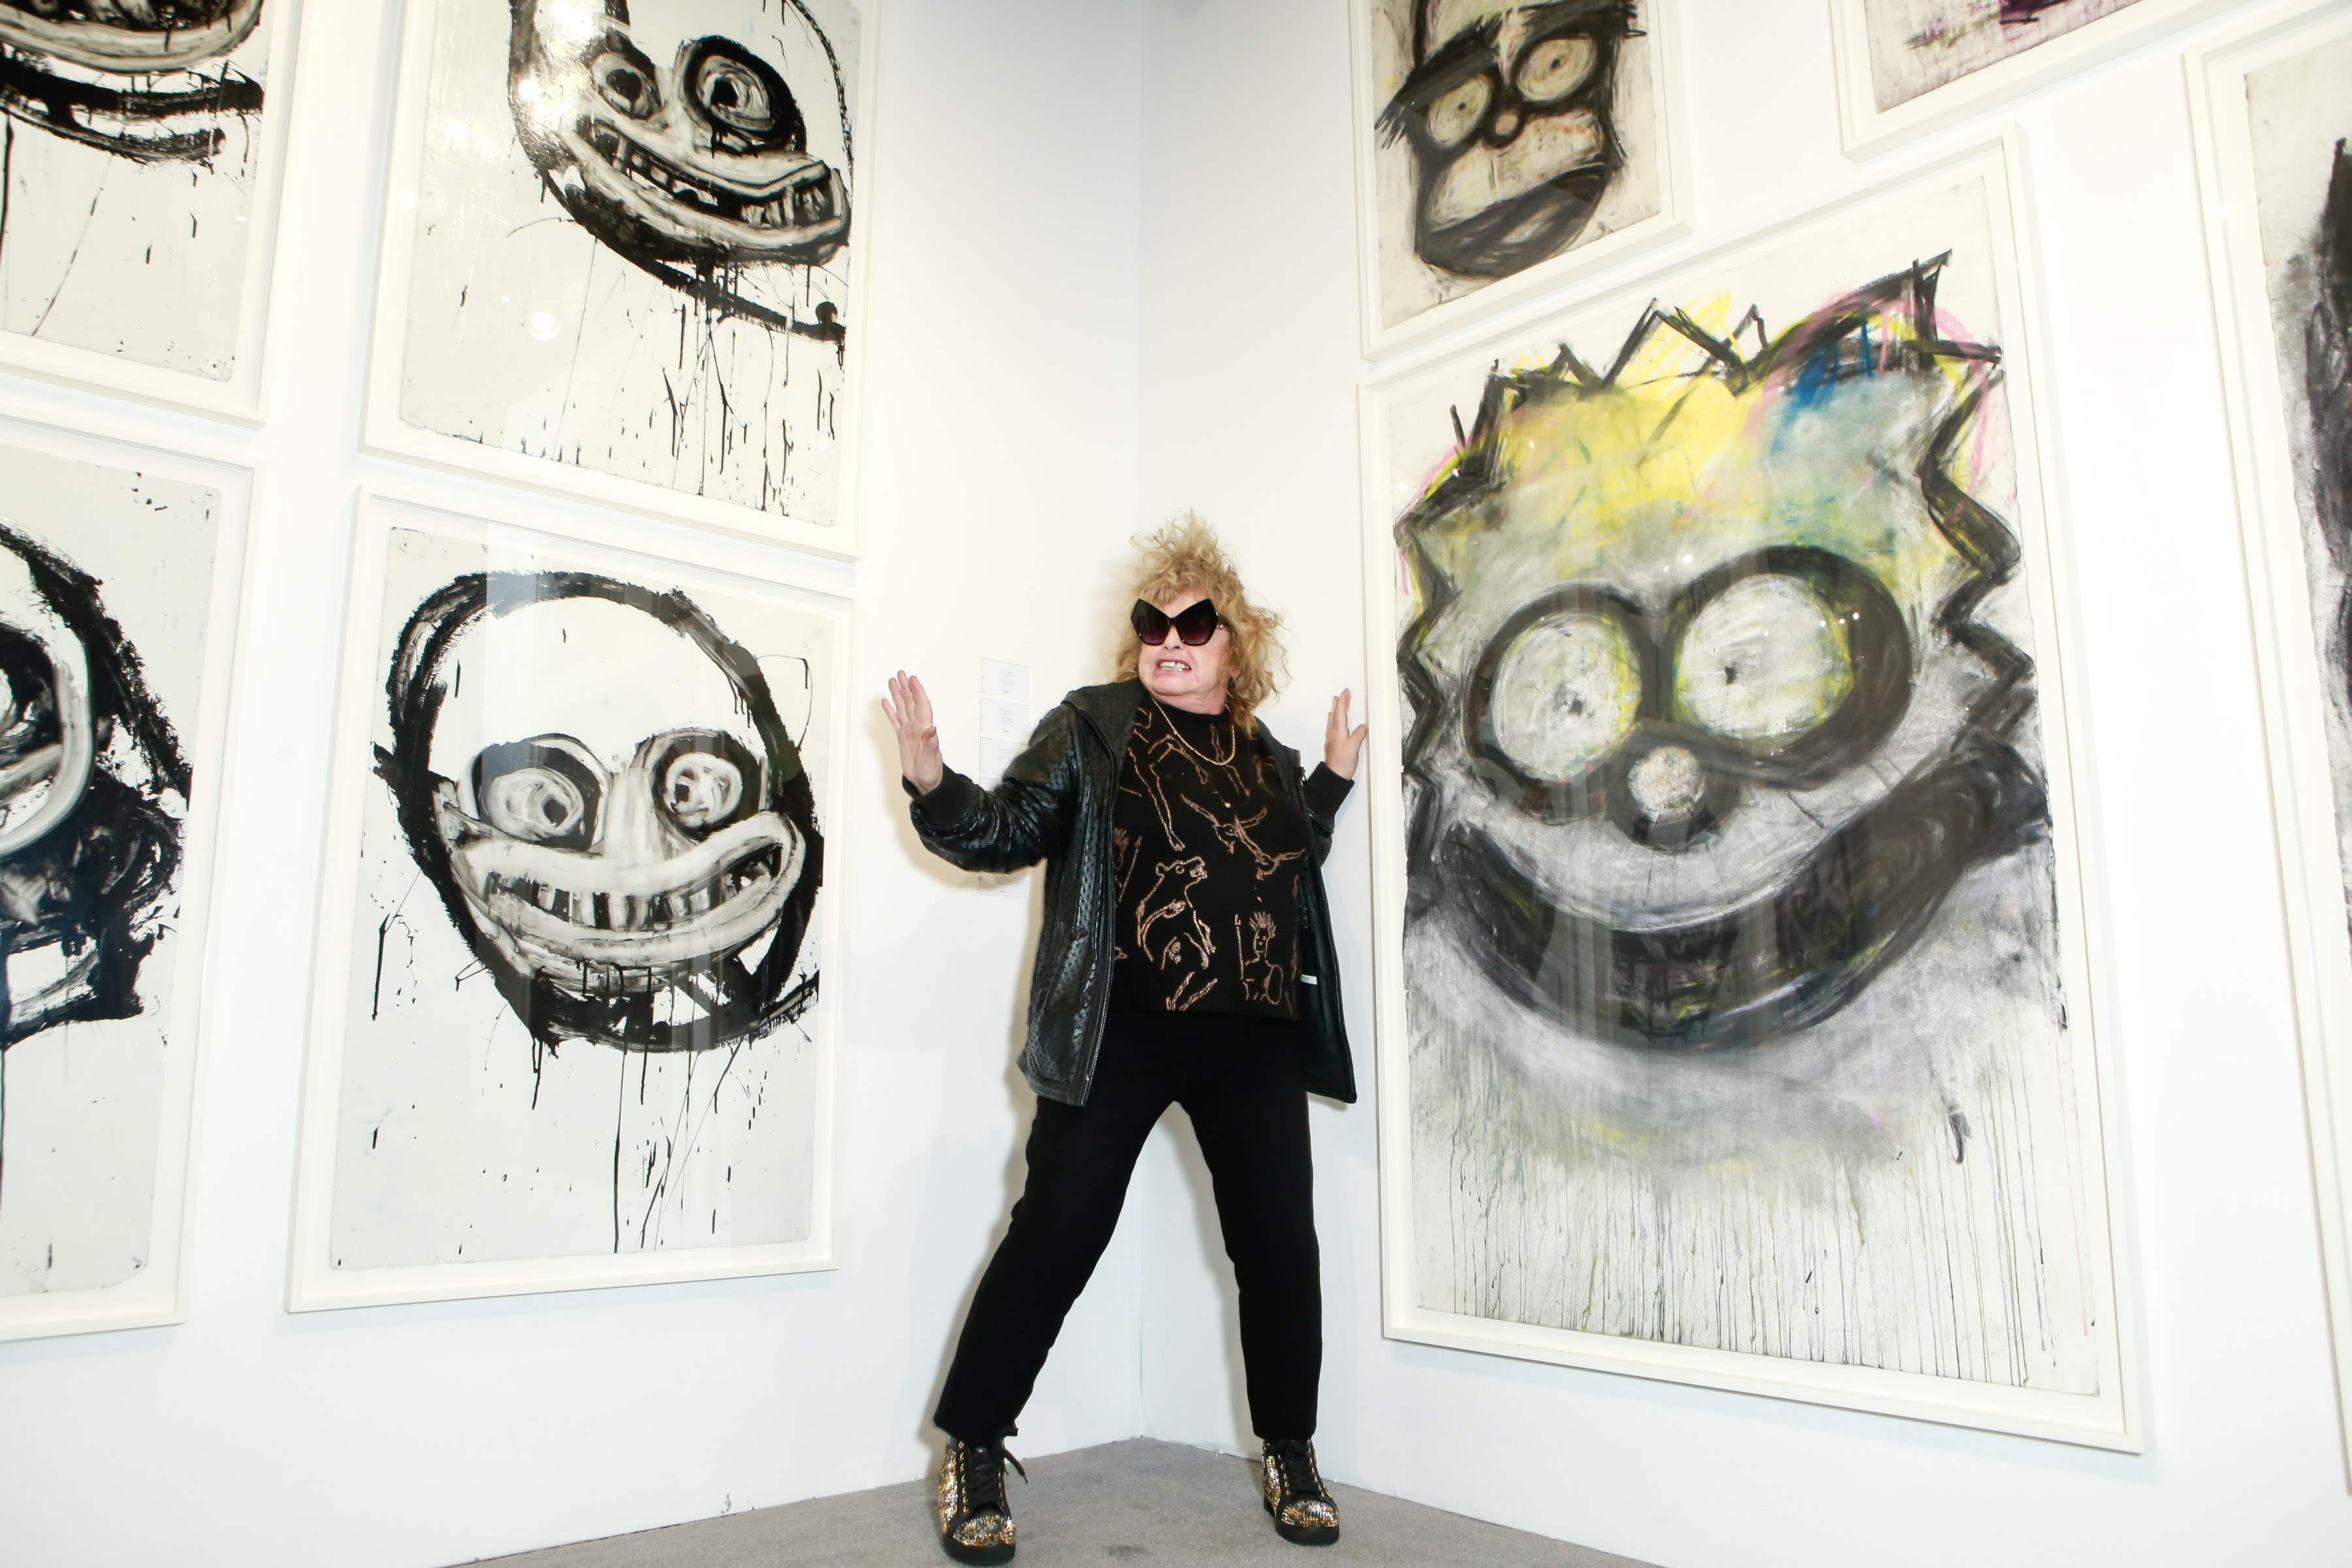 From Seth Rogen's New Art Career to the Death of Pop Painter Joyce Pensato: The Best and Worst of the Art World This Week